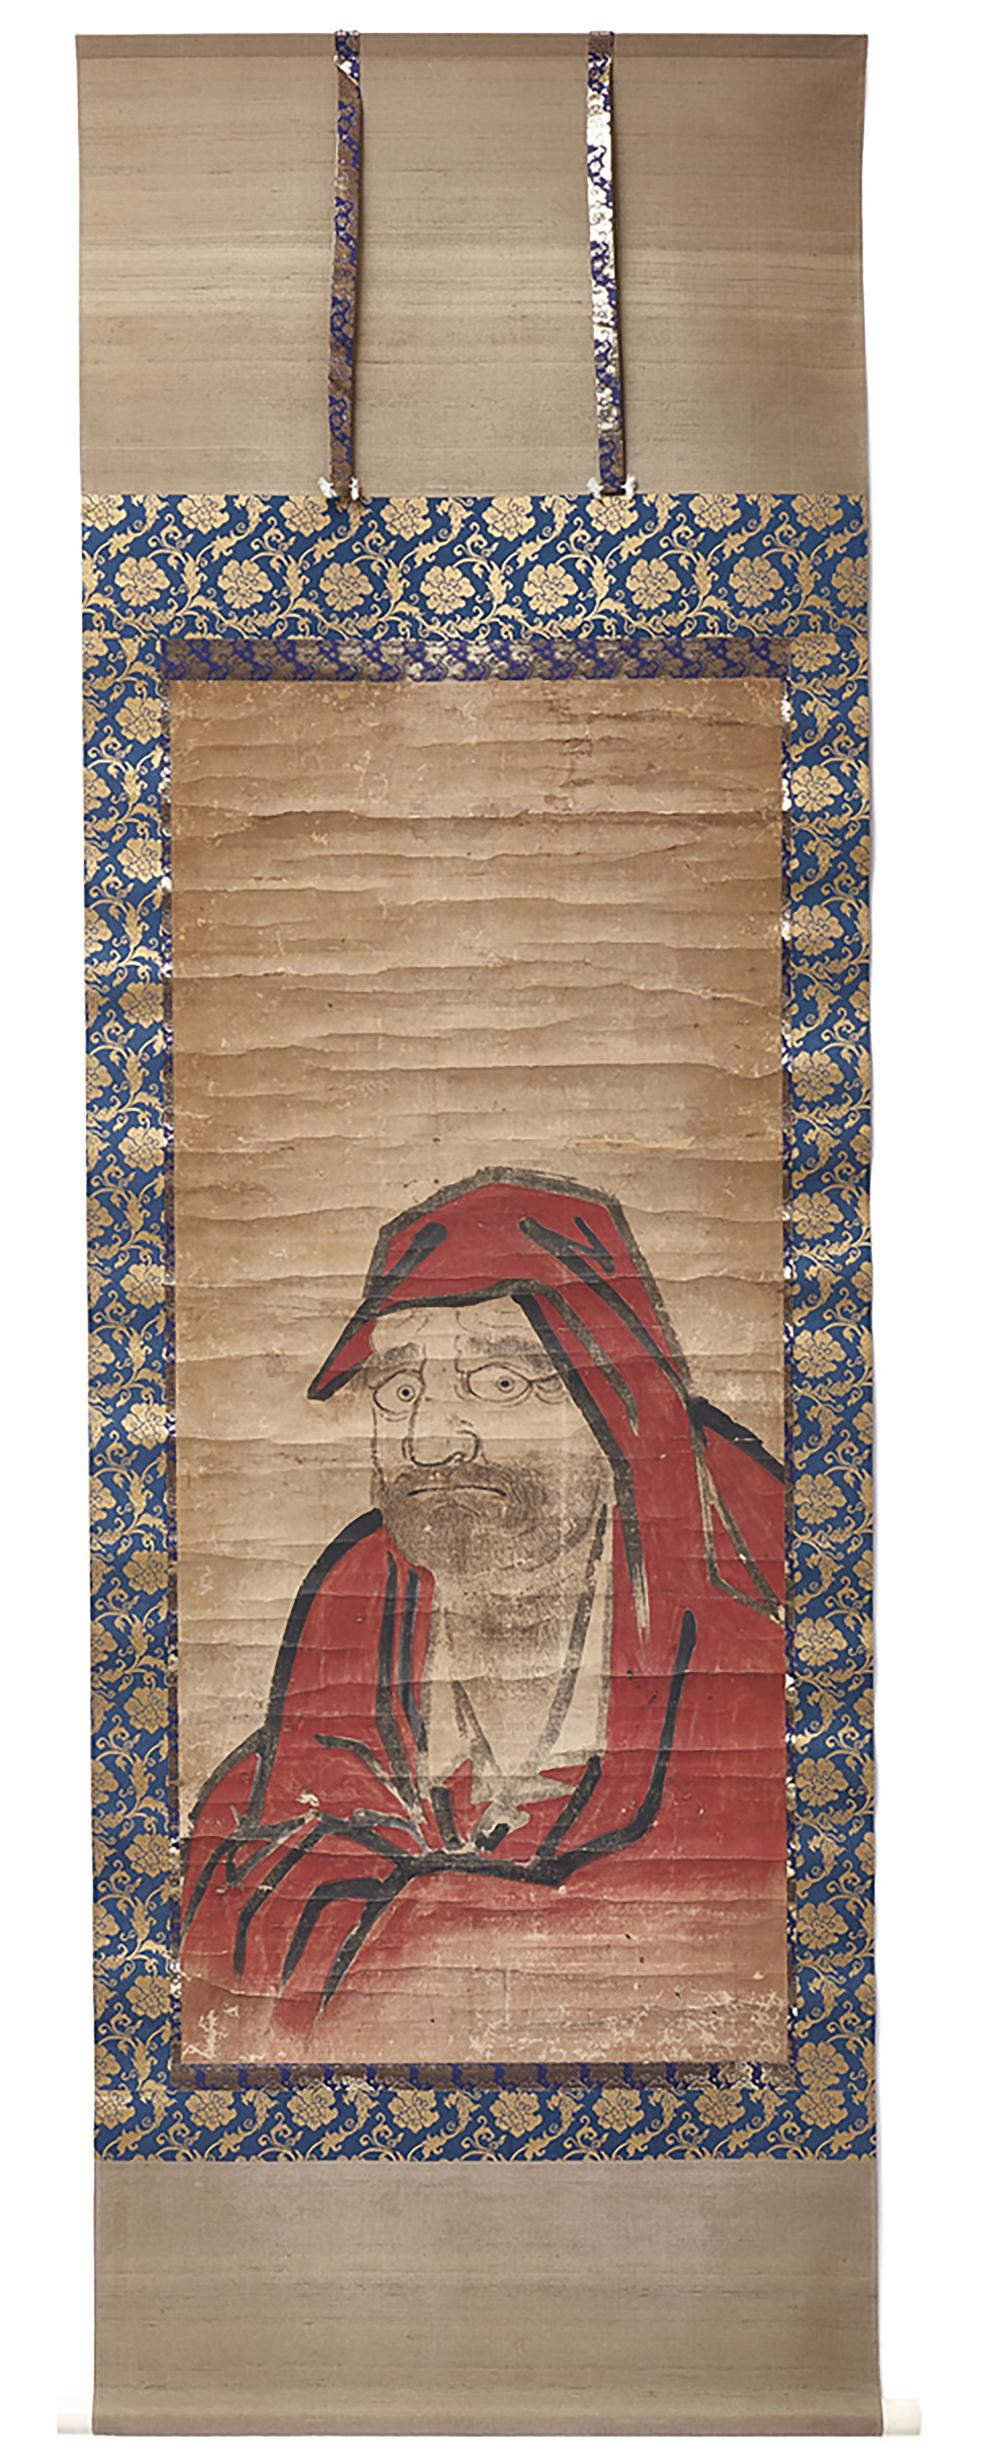 Hanging scroll (kakejiku) with a remounted somewhat wrinkled anonymous pain